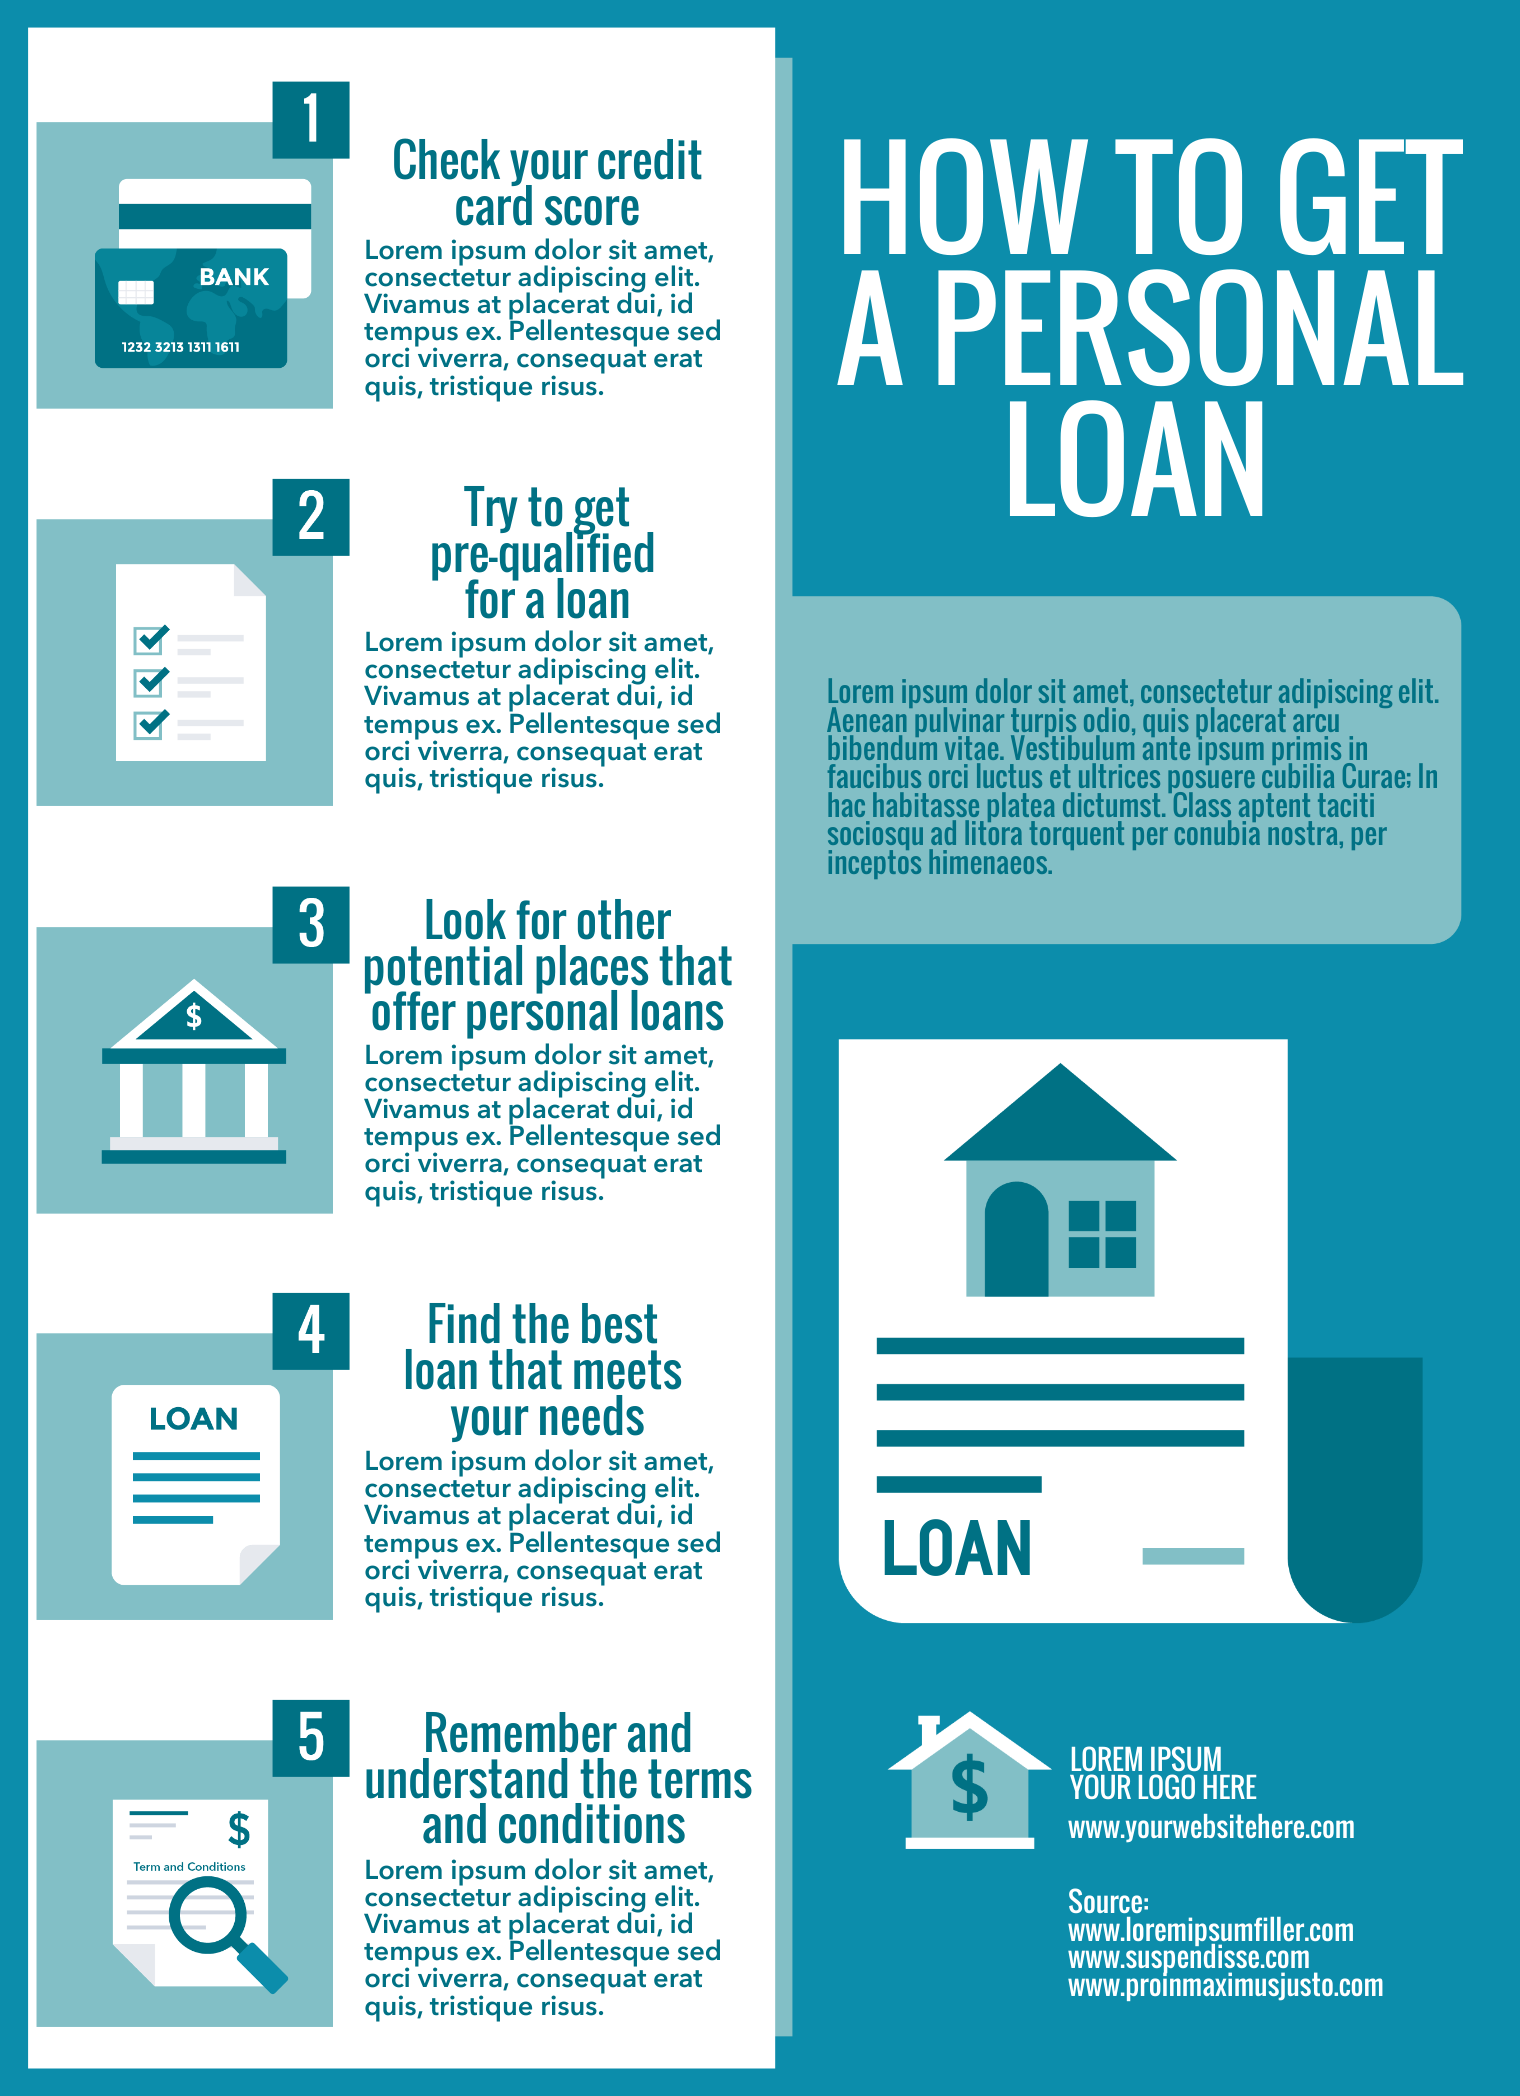 An infographic about how to get a personal loan